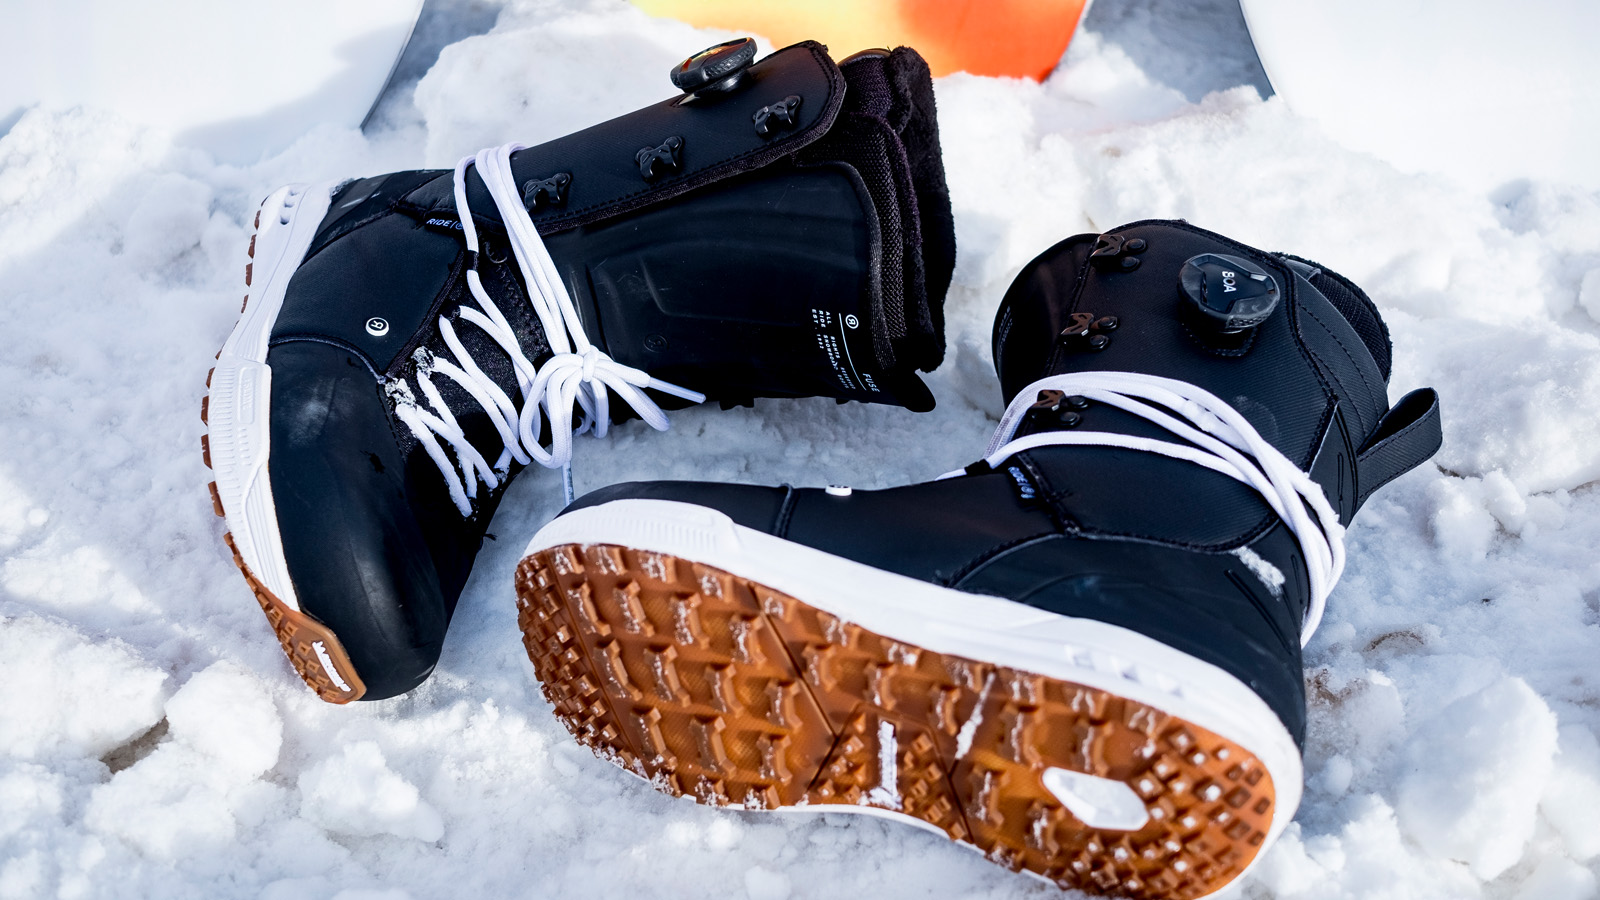 Ride 21/22 Snowboard Boots Preview